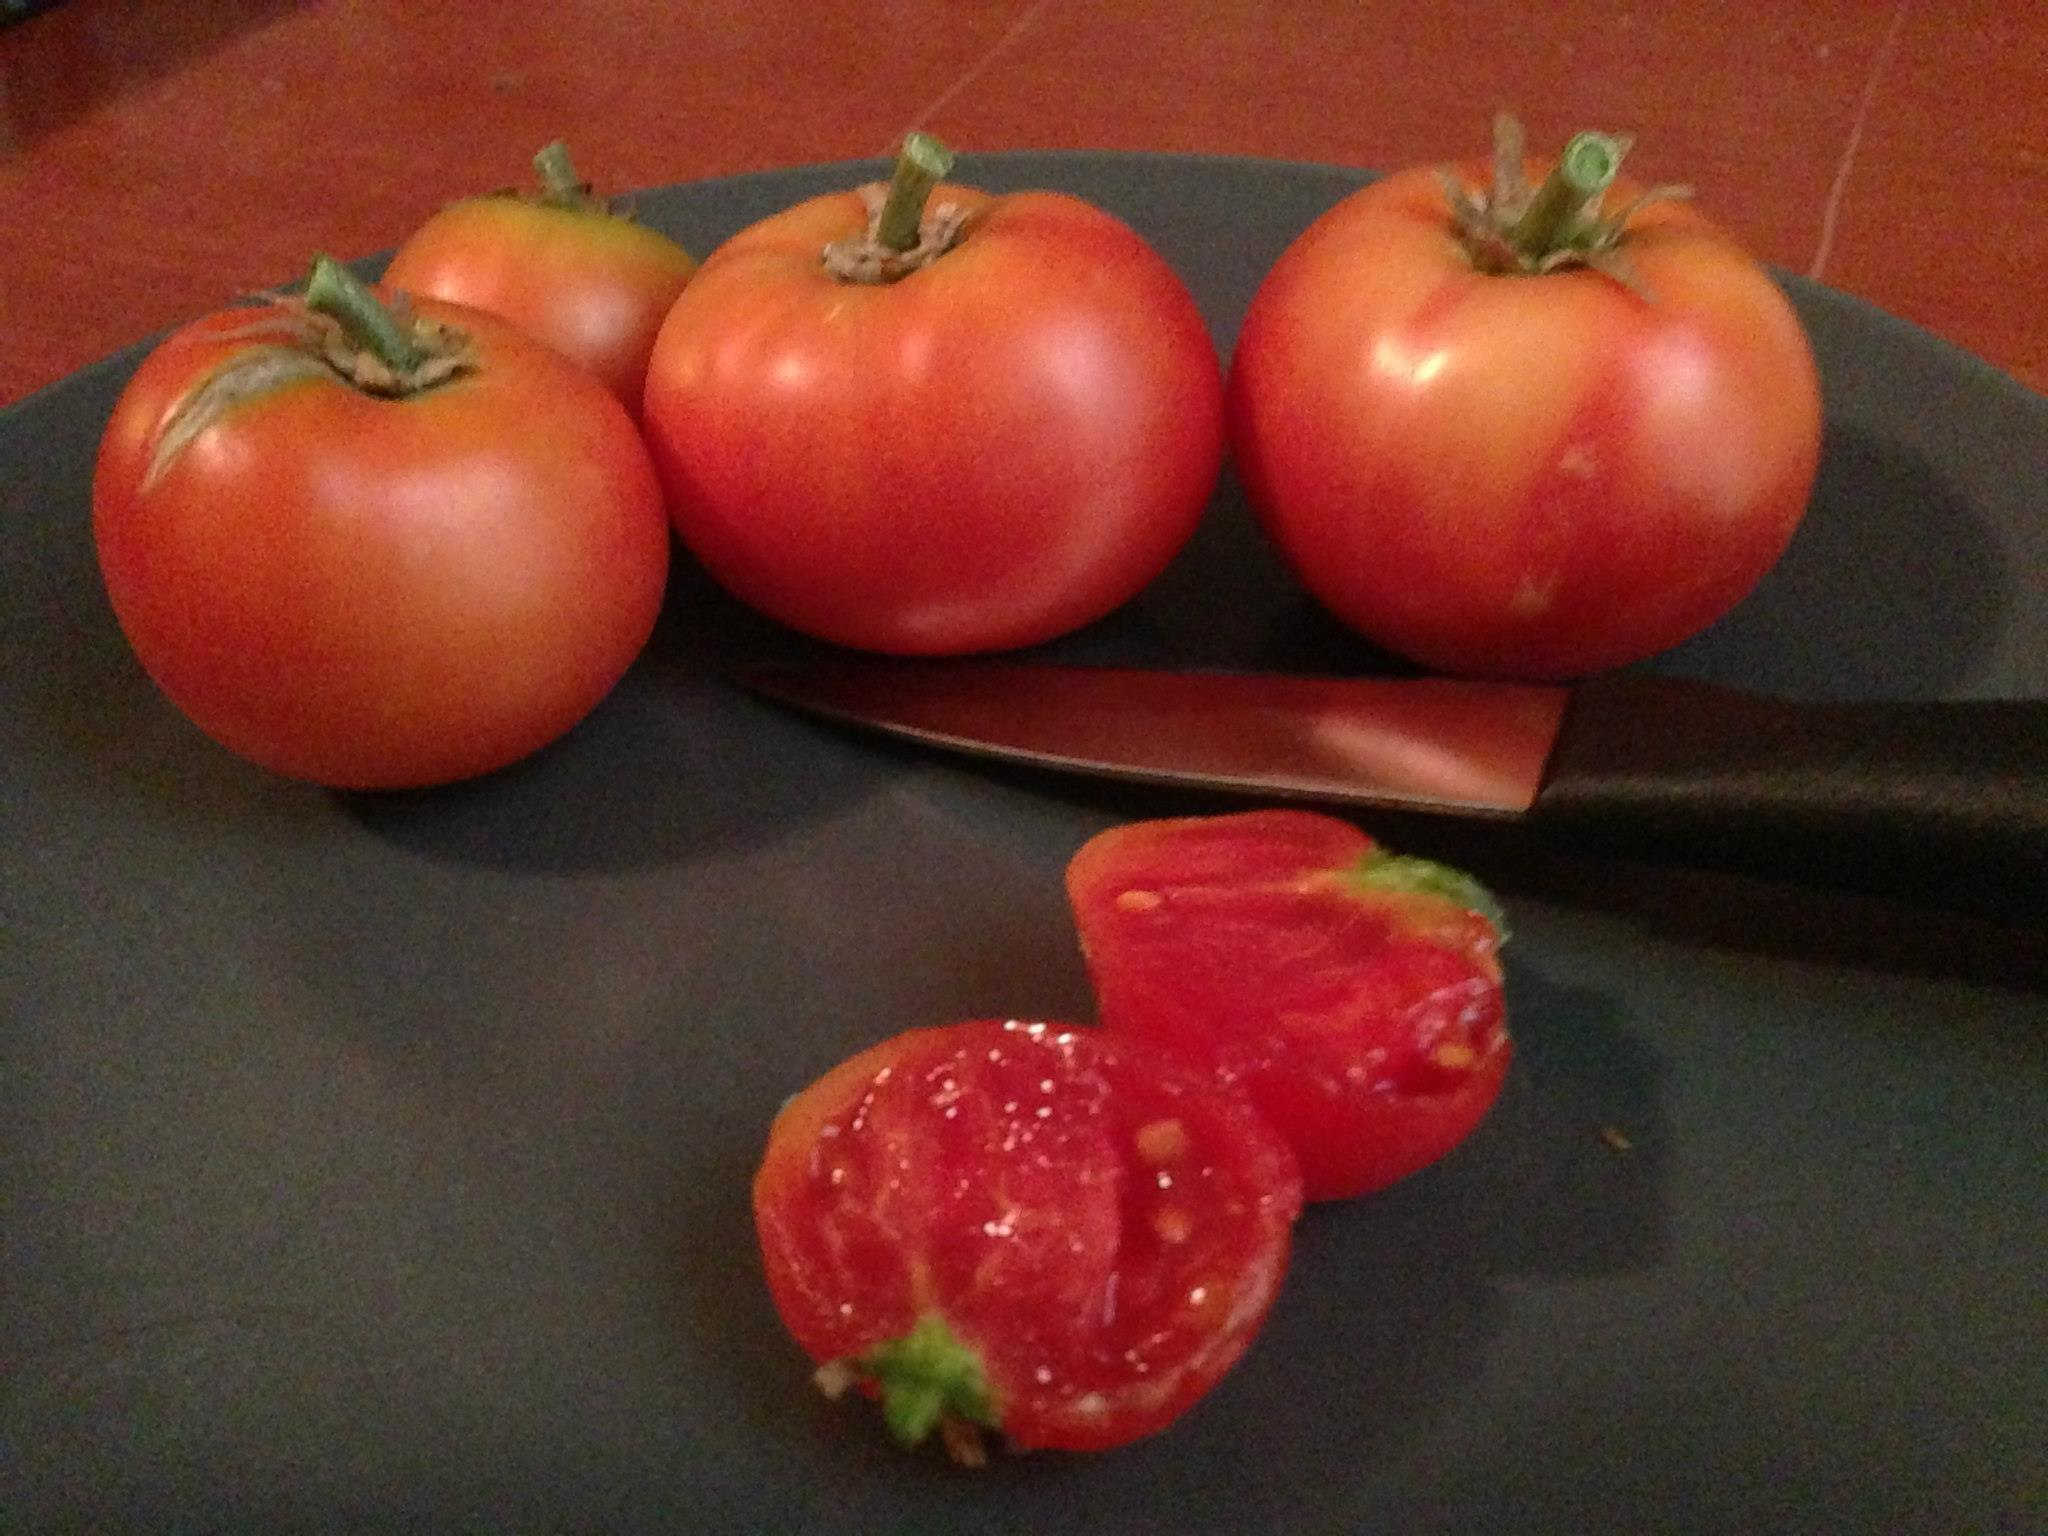 Tomato Woes